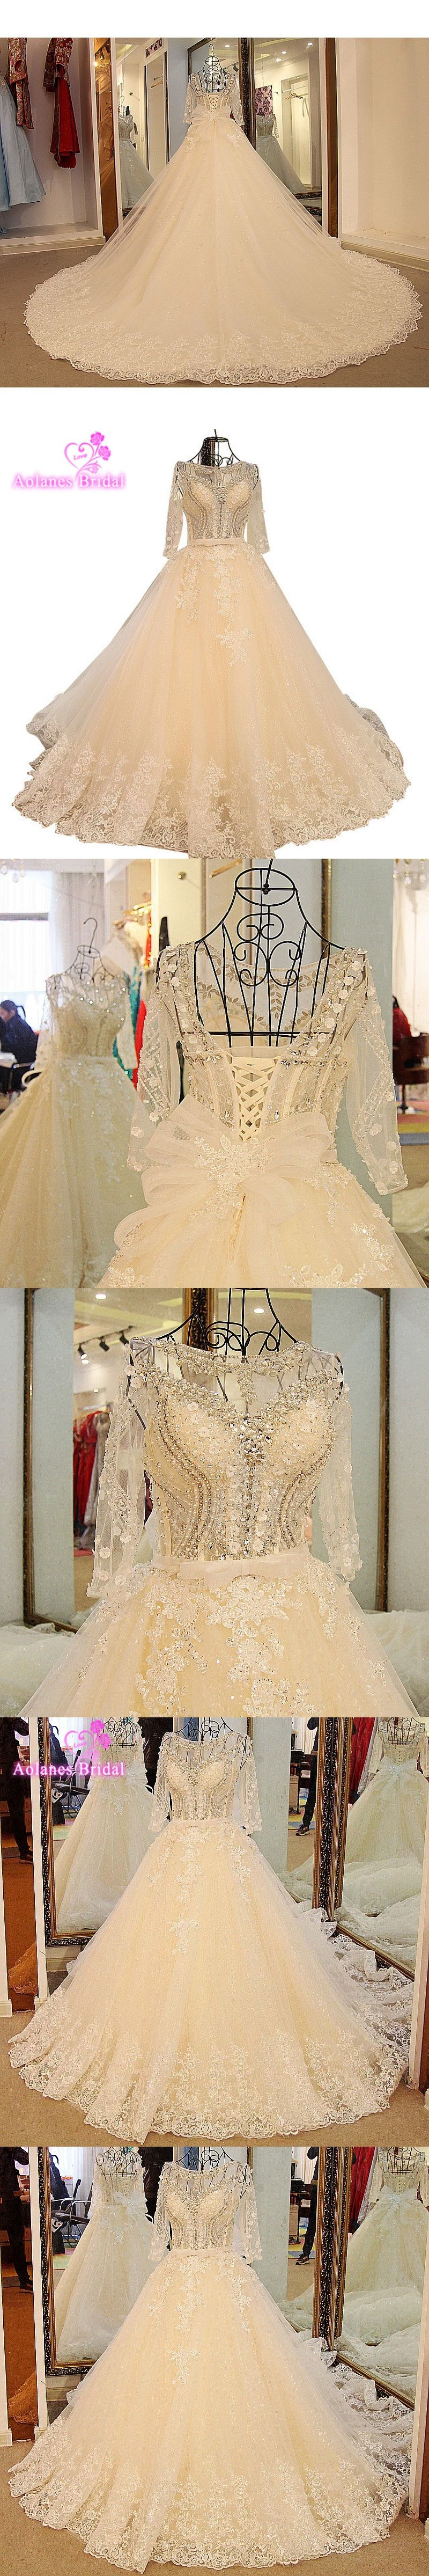 Wedding dresses with rhinestones  Luxurious Bling Royal Train Wedding Dresses Sheer Bridal Crystal